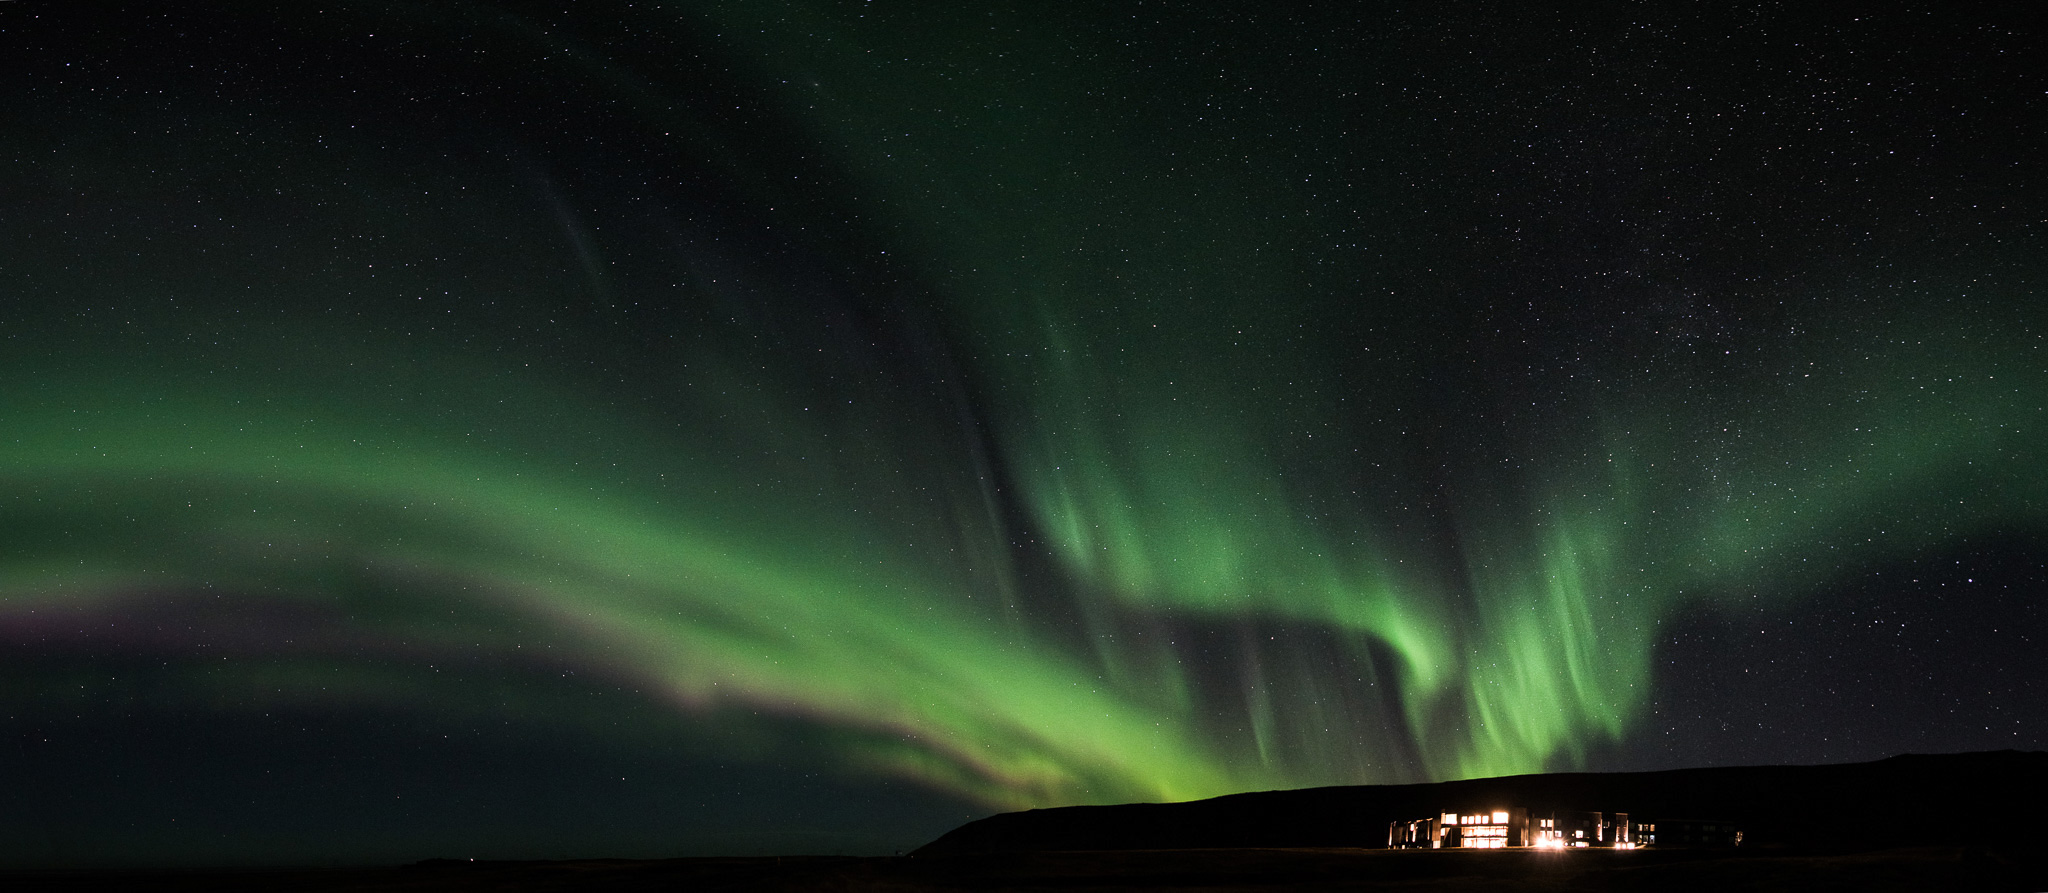 Watching the northern lights from our hotel room, and FossHotel.